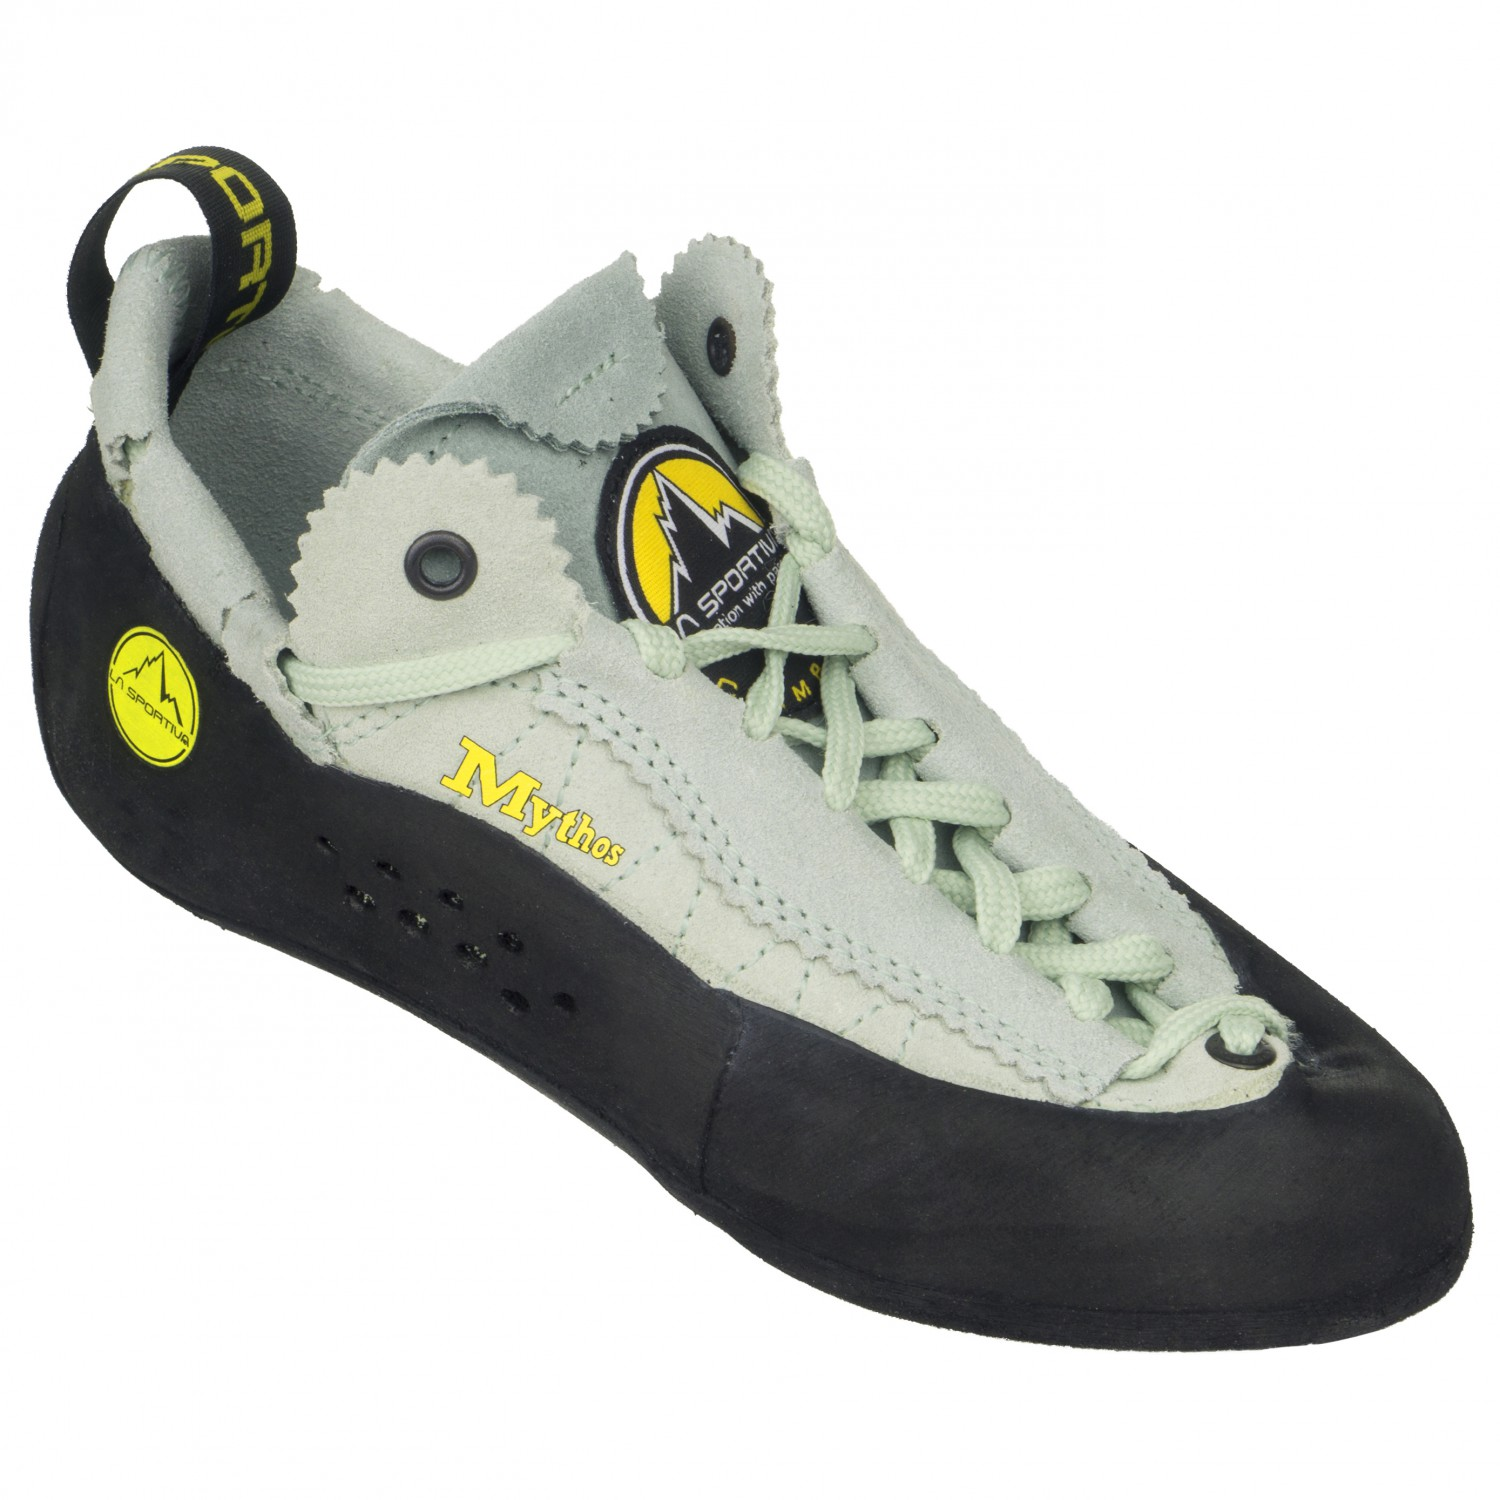 la sportiva mythos climbing shoes women 39 s free uk delivery. Black Bedroom Furniture Sets. Home Design Ideas